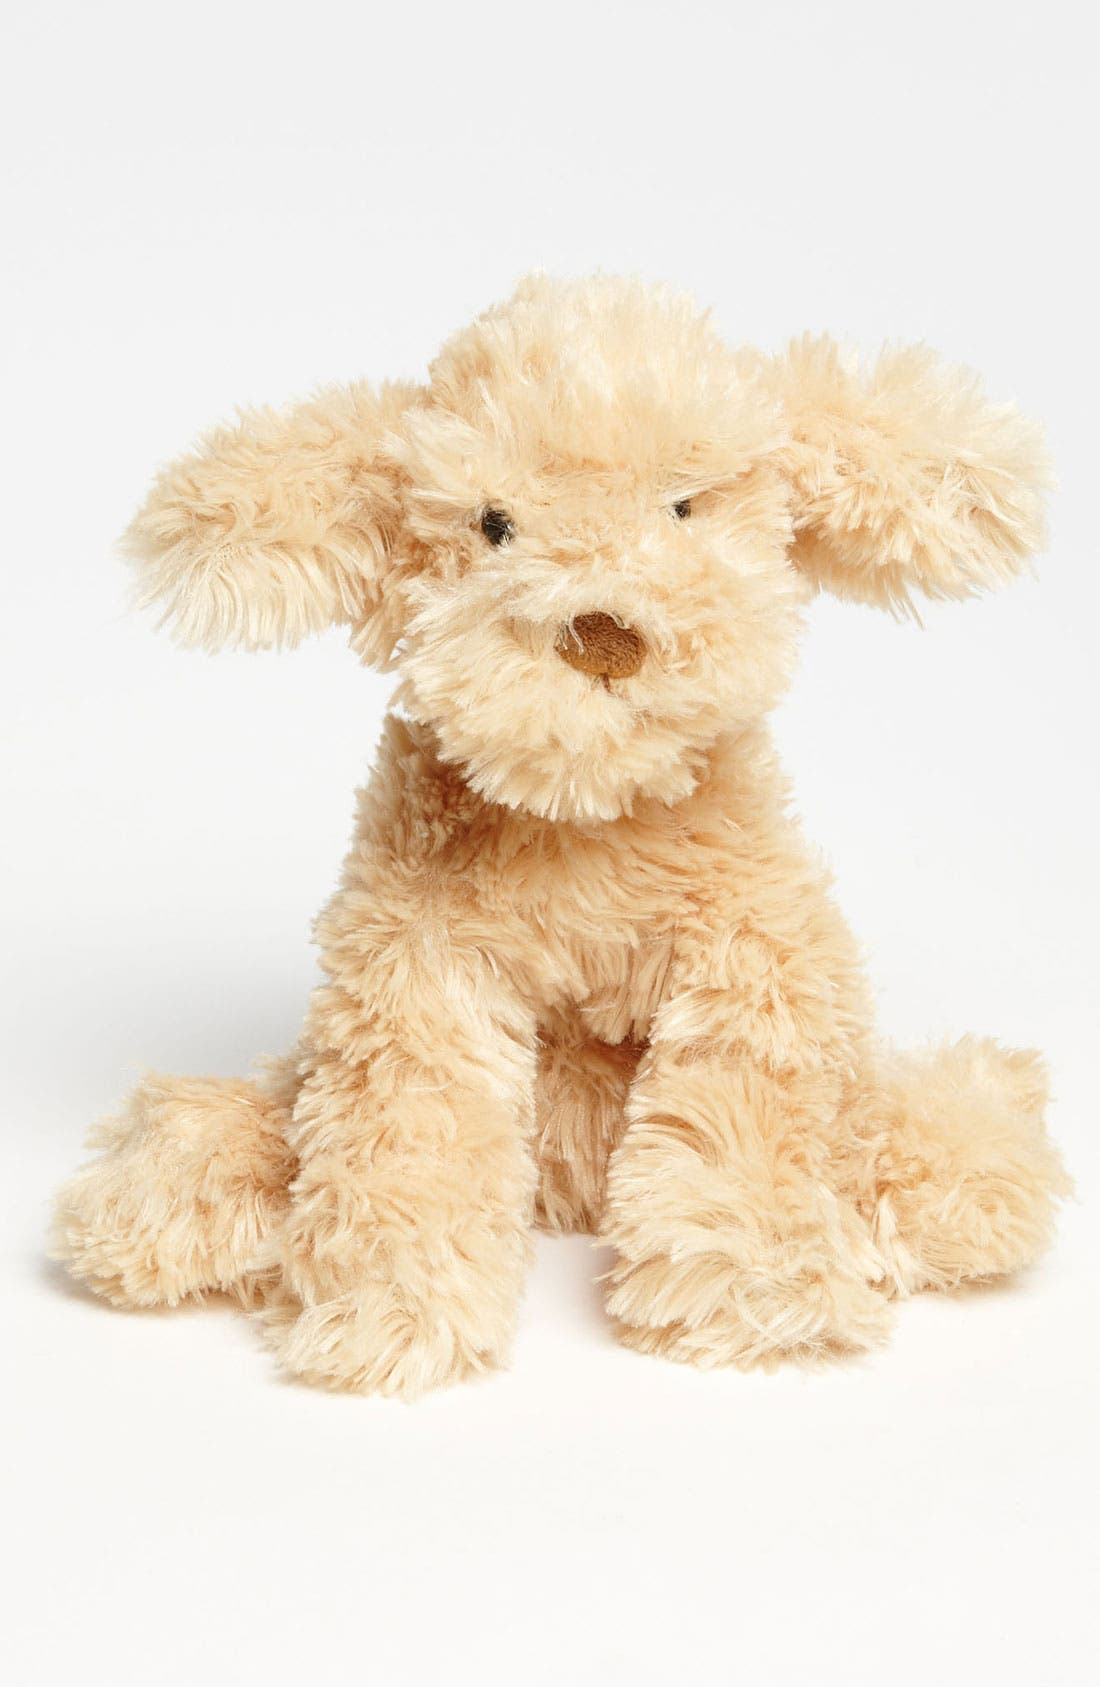 Alternate Image 1 Selected - Gund 'Nayla' Stuffed Animal